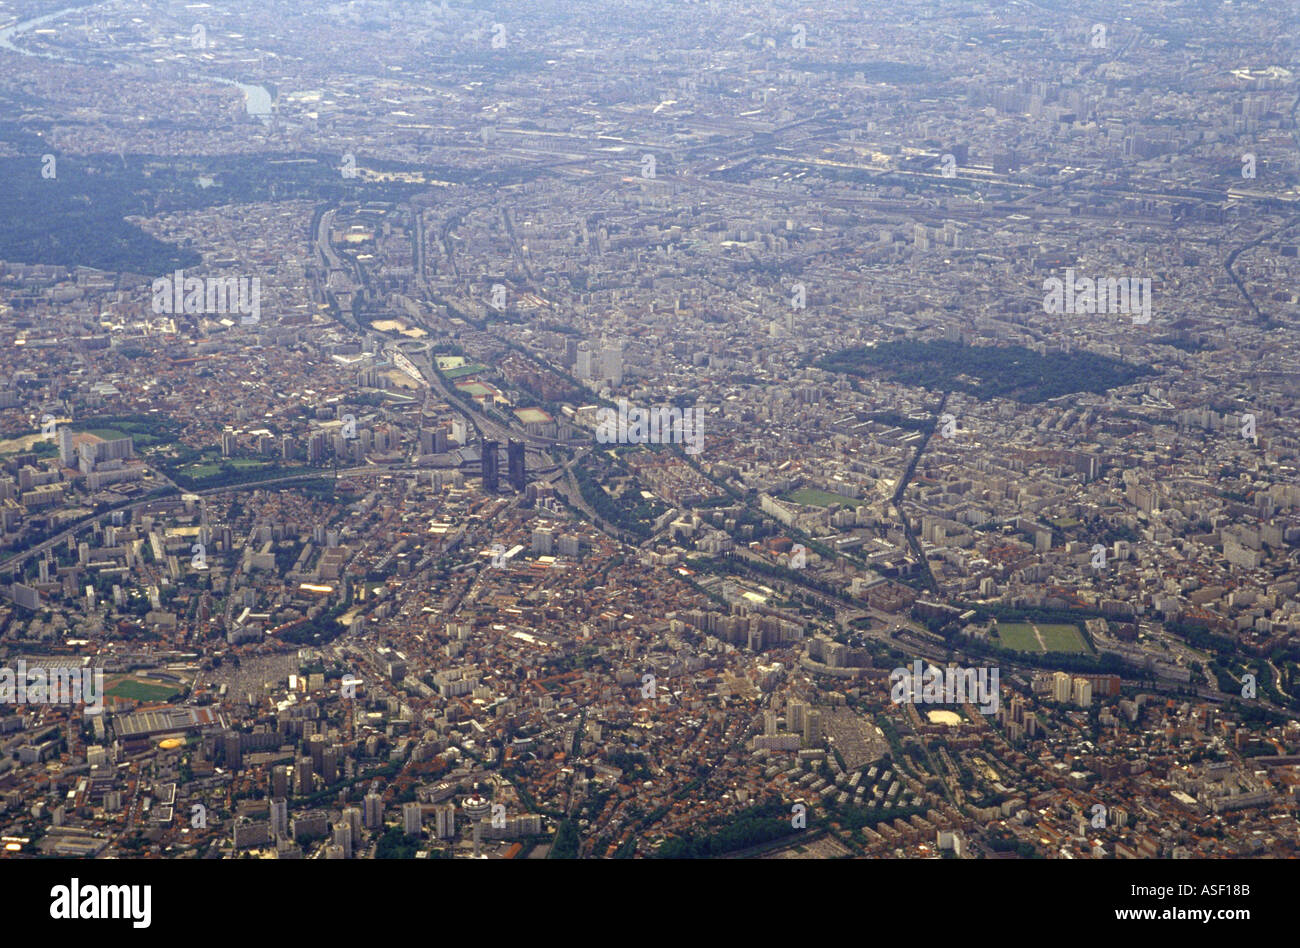 A view of Paris from above Stock Photo